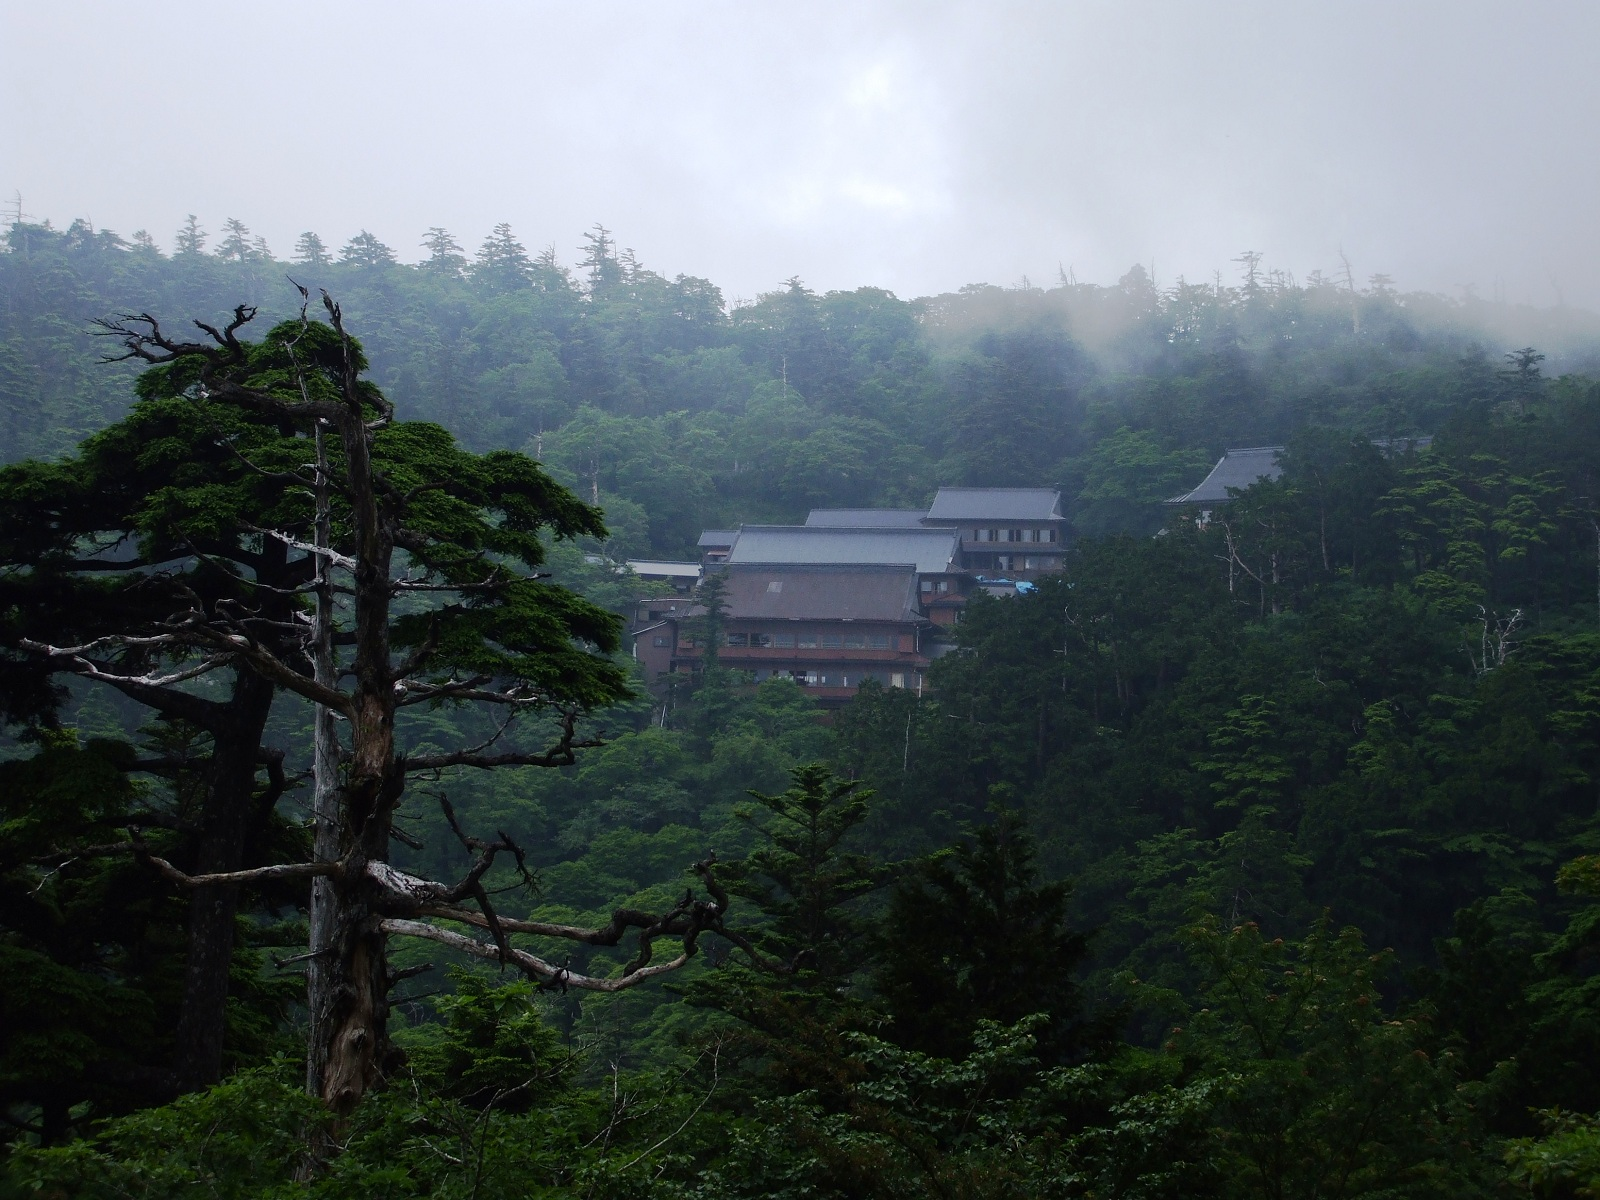 Select holiday mount omine japan asia mist over the mountain